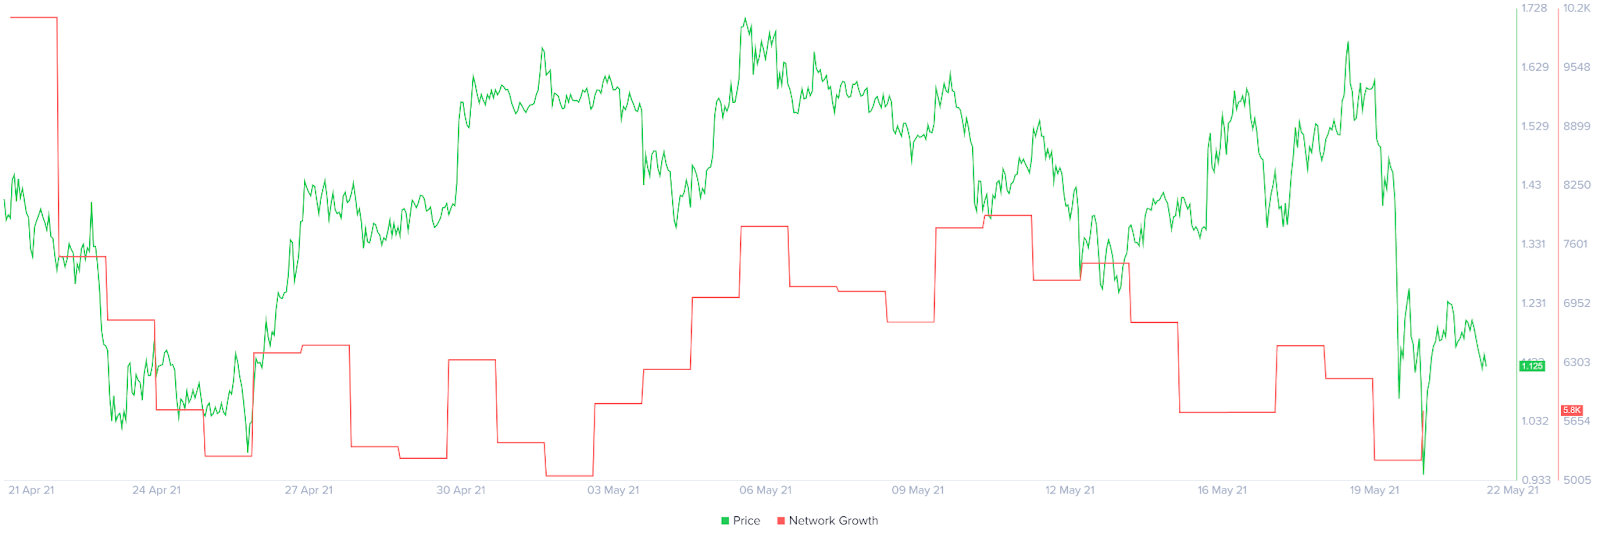 Ripple XRP Network Growth Chart